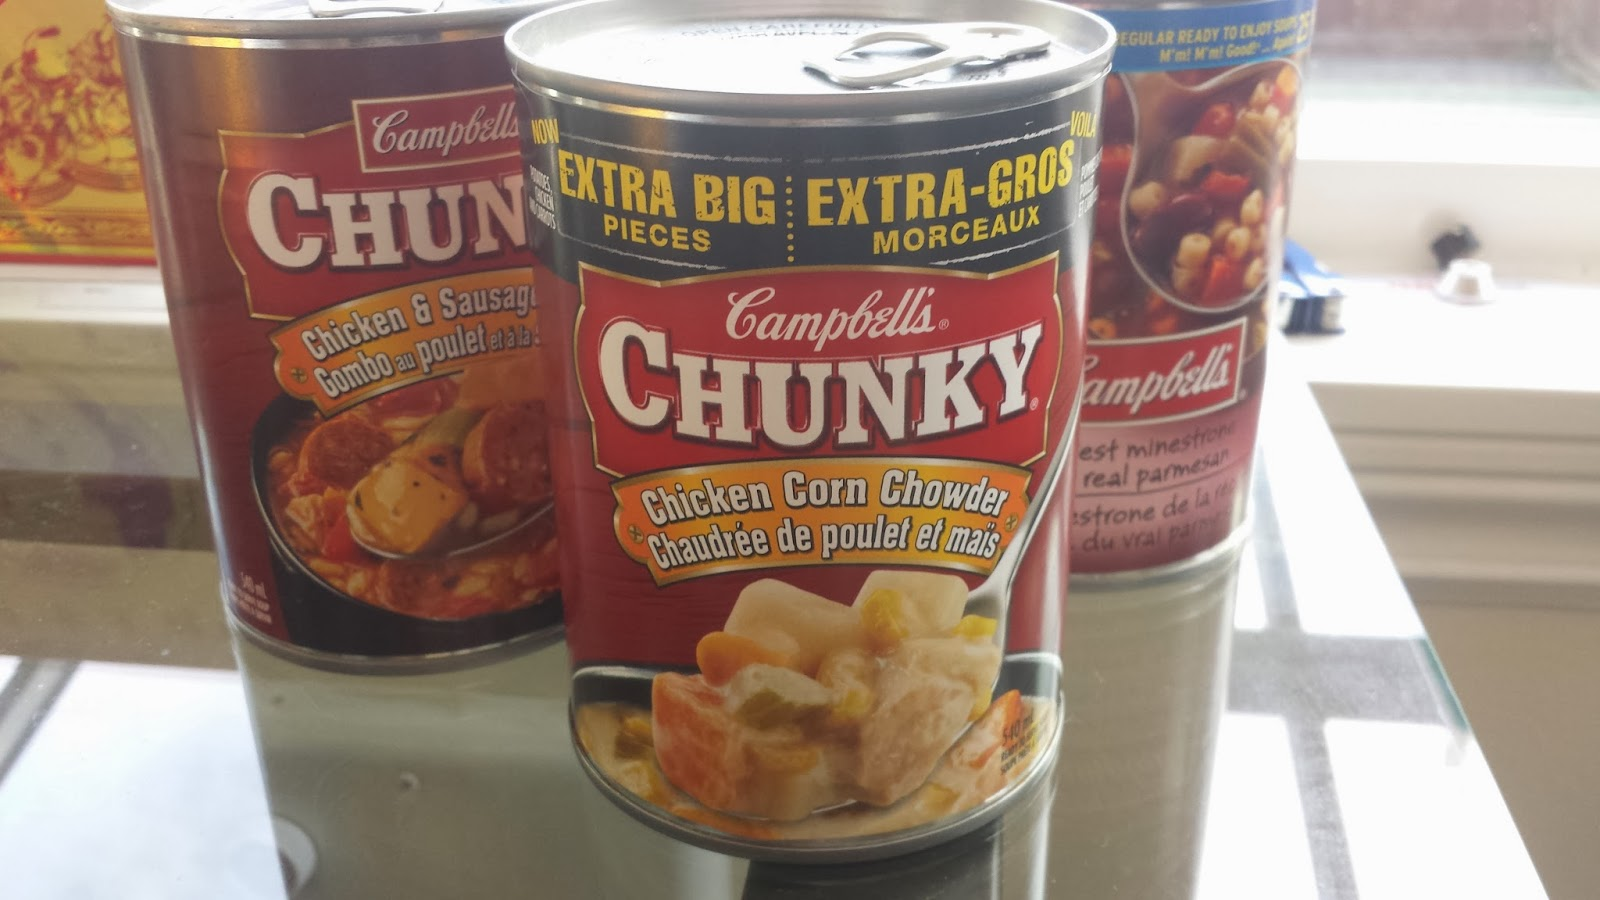 Campbell Chunky soup cans